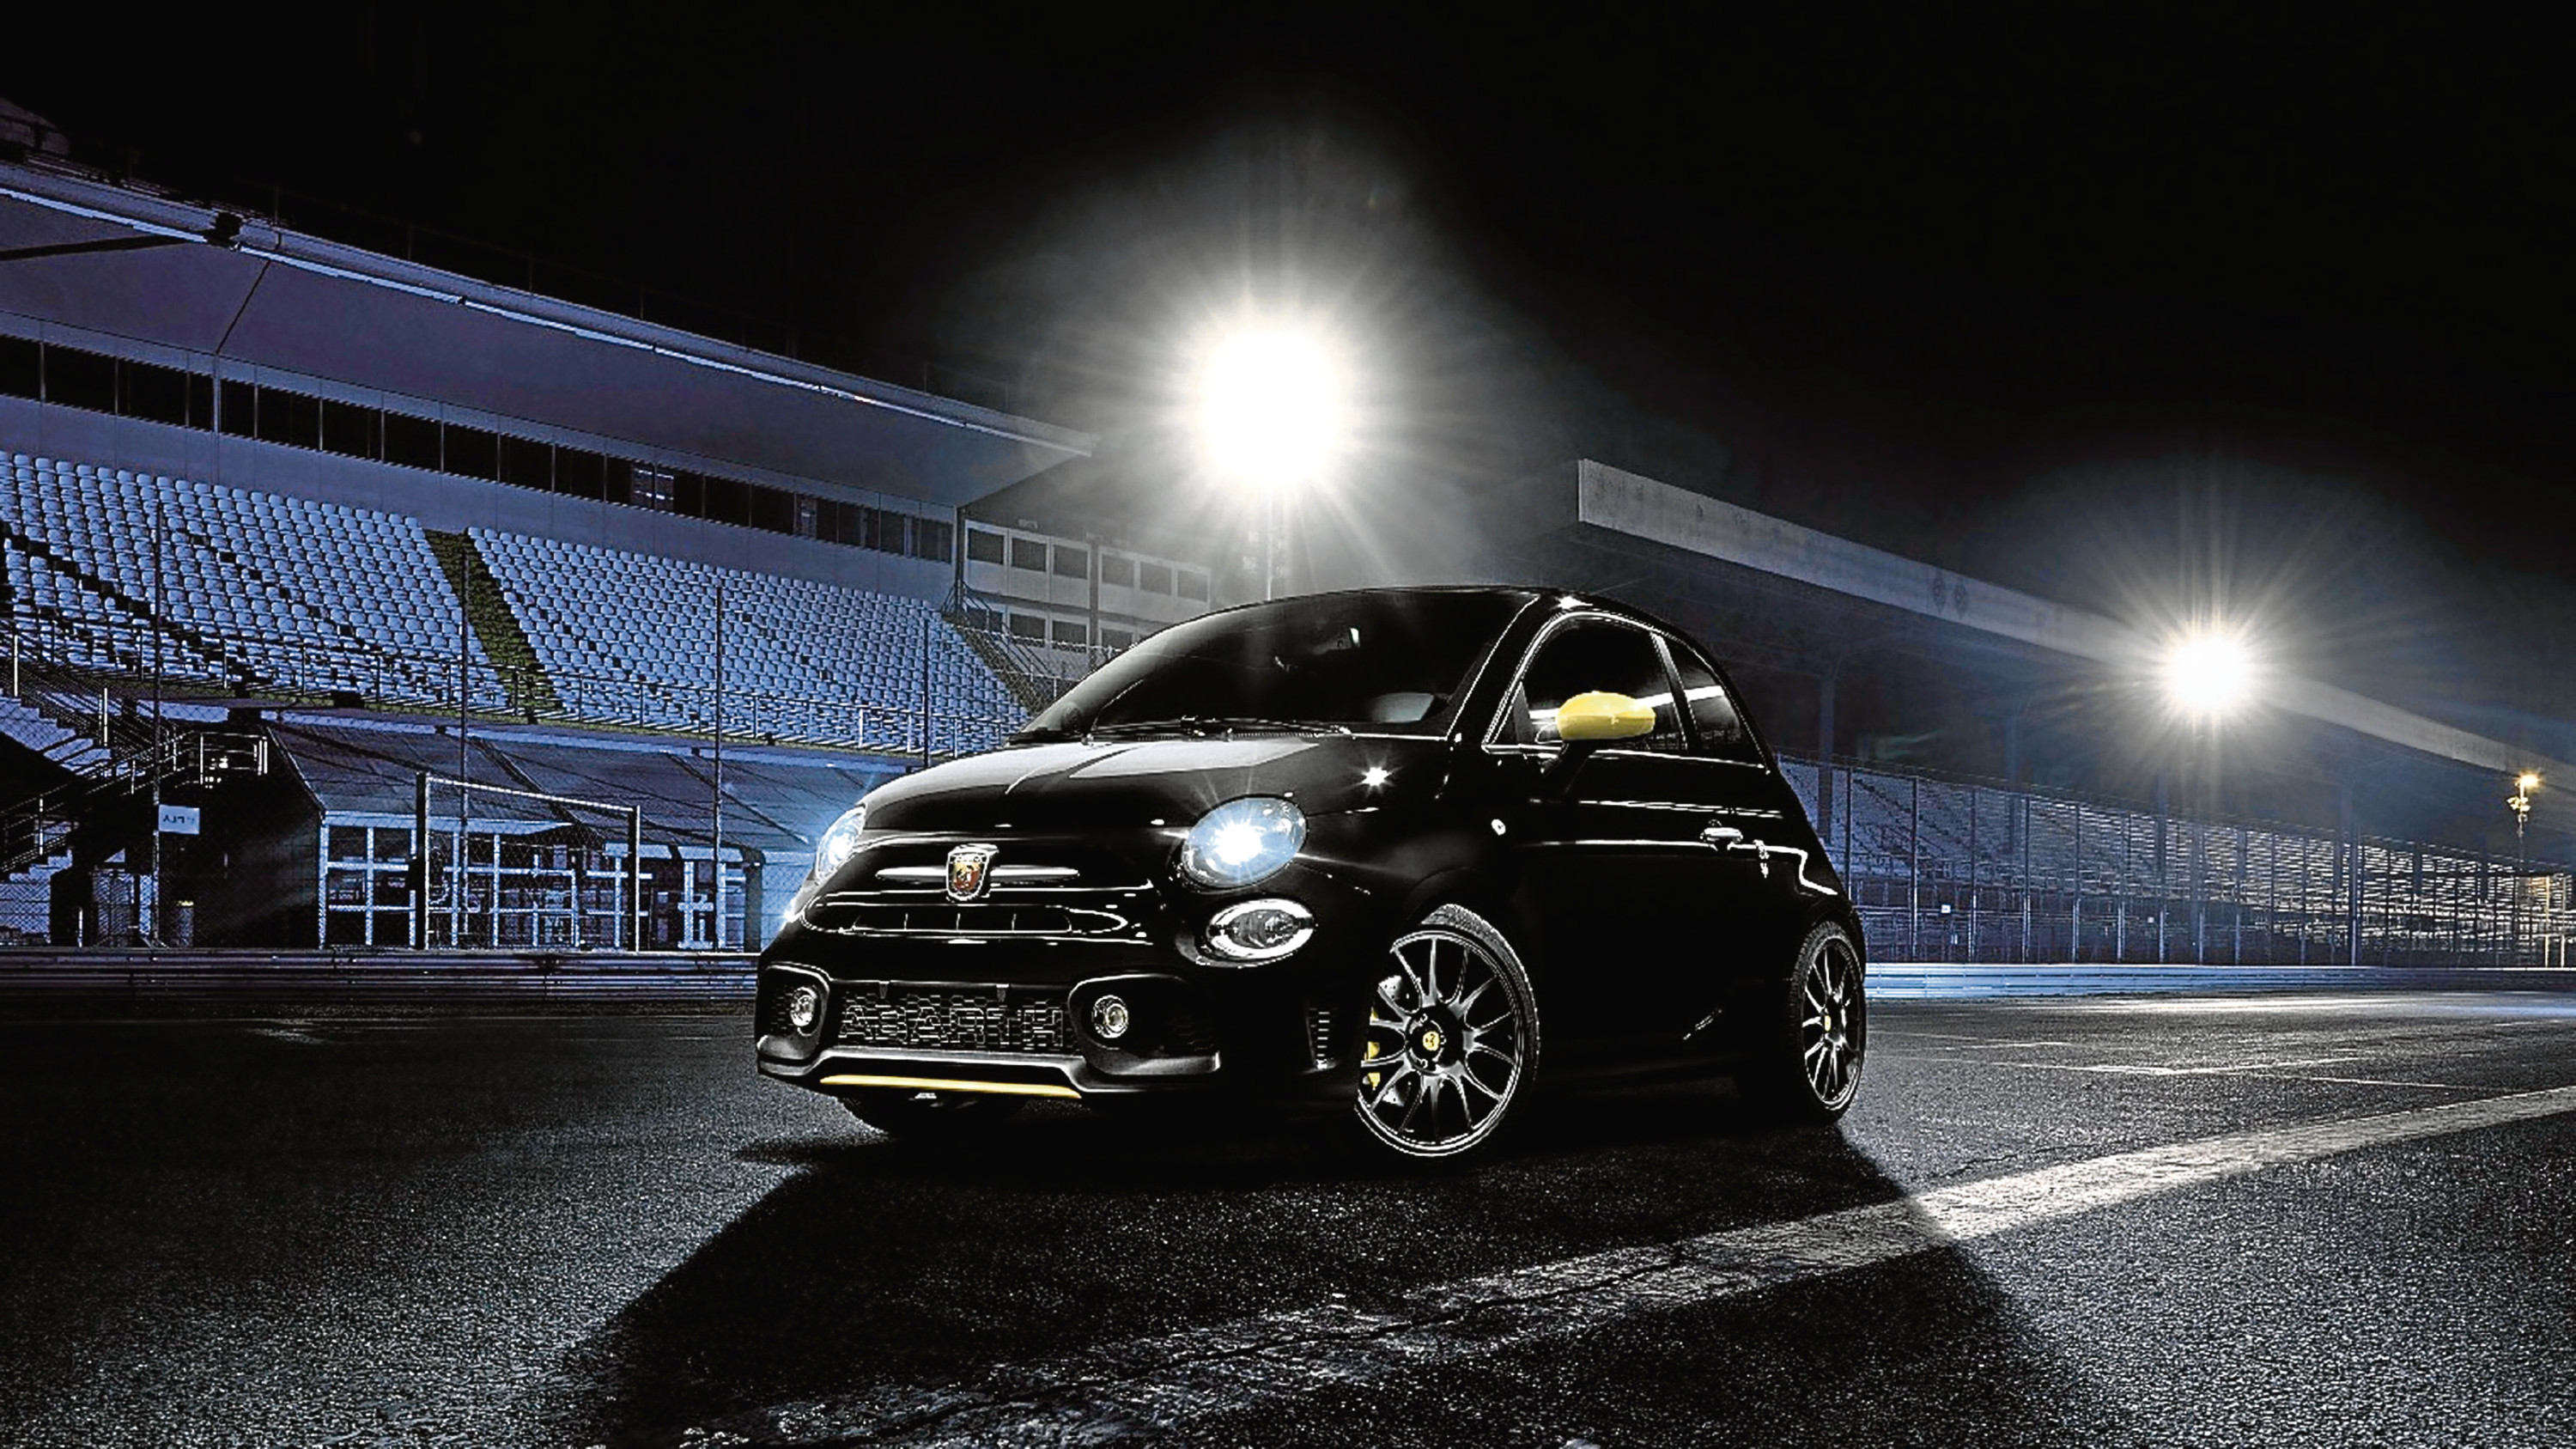 Undated Handout Photo of the Abarth 595 Trofeo, which has a range of updated parts. See PA Feature MOTORING News. Picture credit should read: PA Photo/Abarth. WARNING: This picture must only be used to accompany PA Feature MOTORING News.